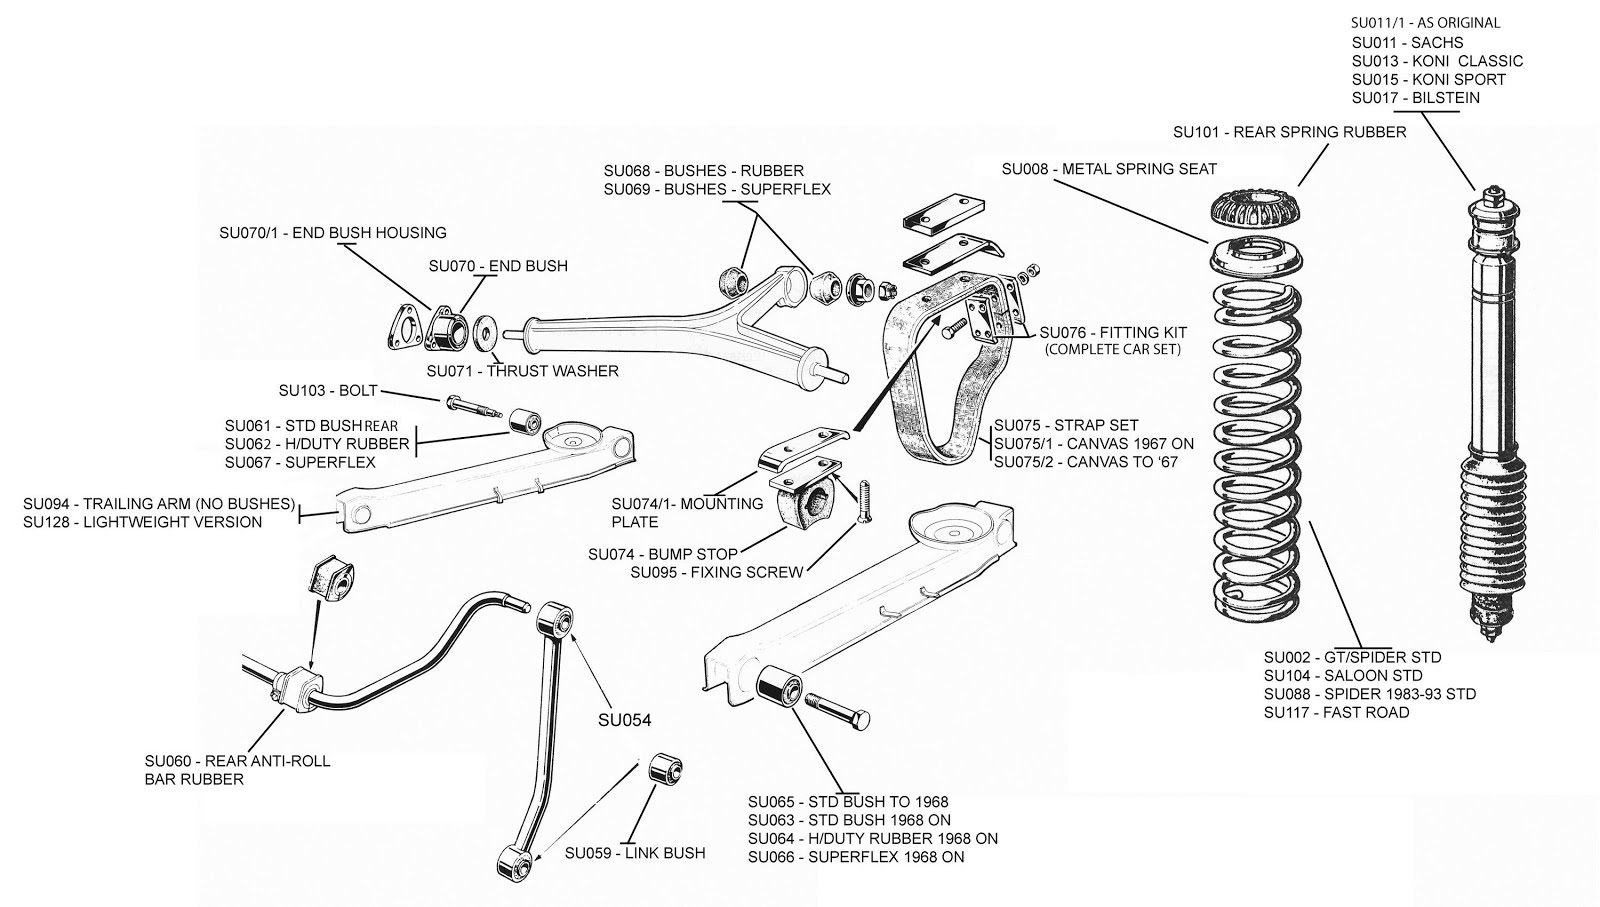 1969 Alfa Romeo 1750 Gtv Restoration August 2018 916 Wiring Diagram Rear Suspension